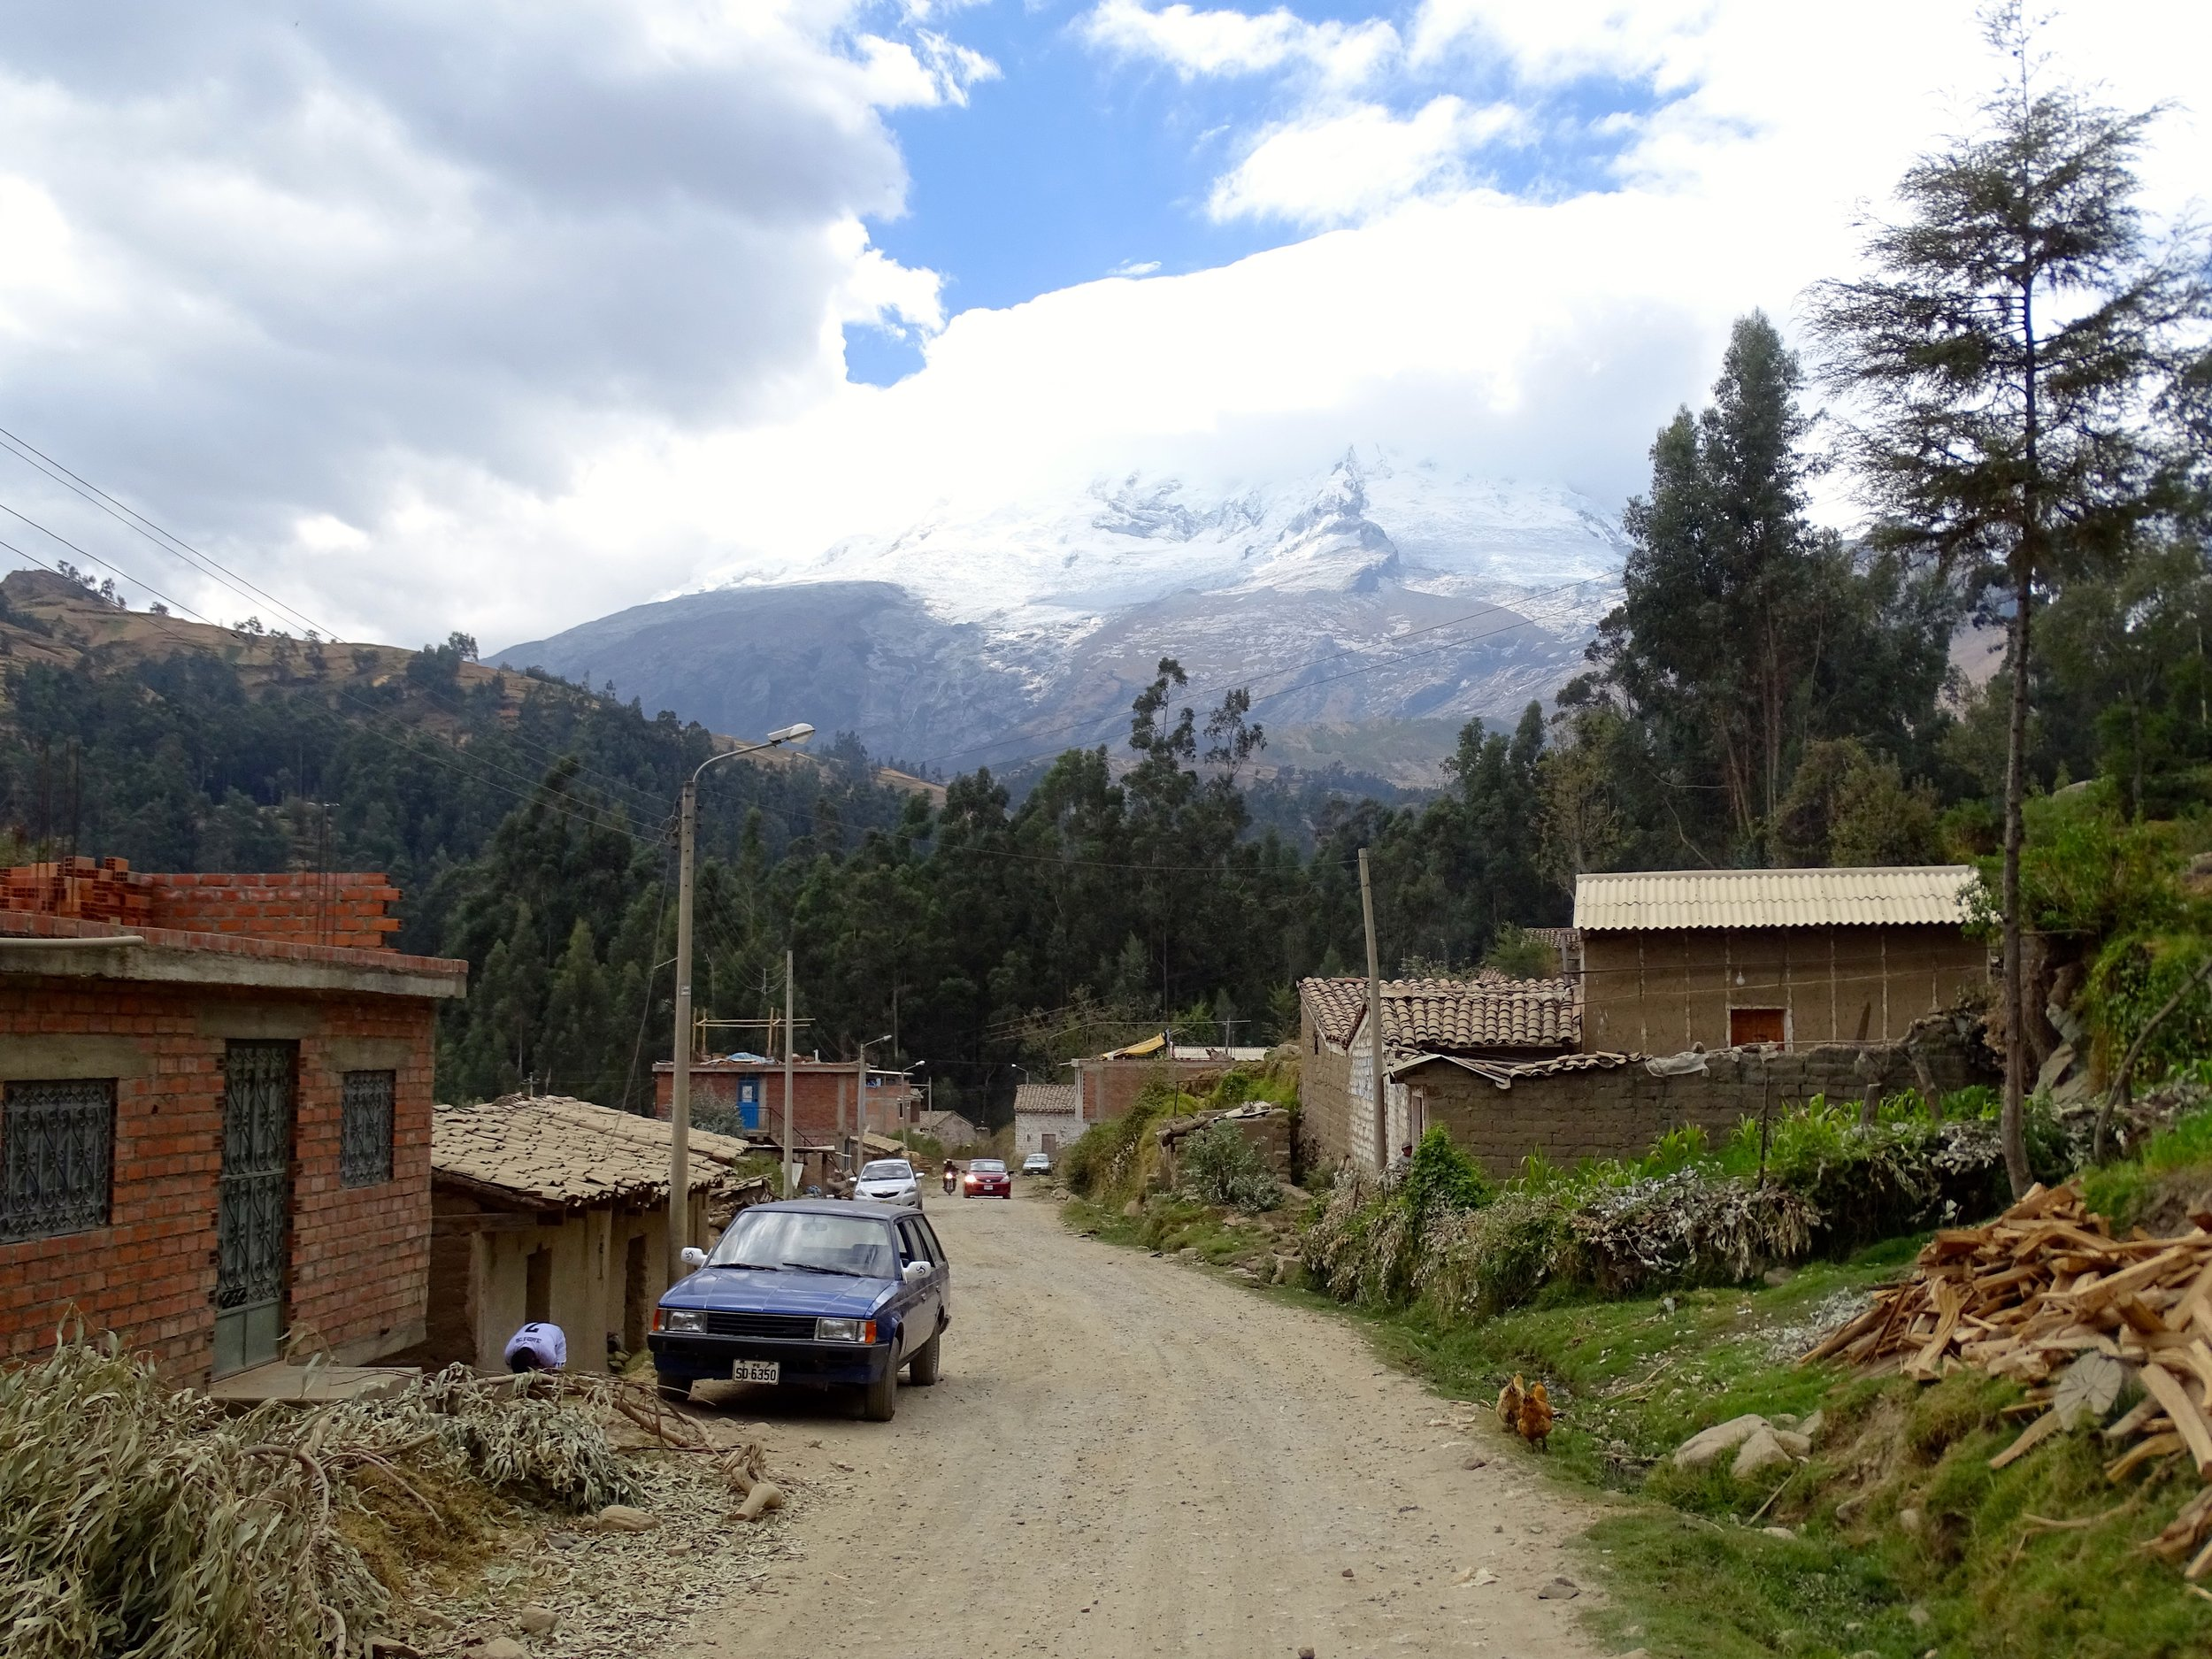 Country scene in the Andes of Peru.